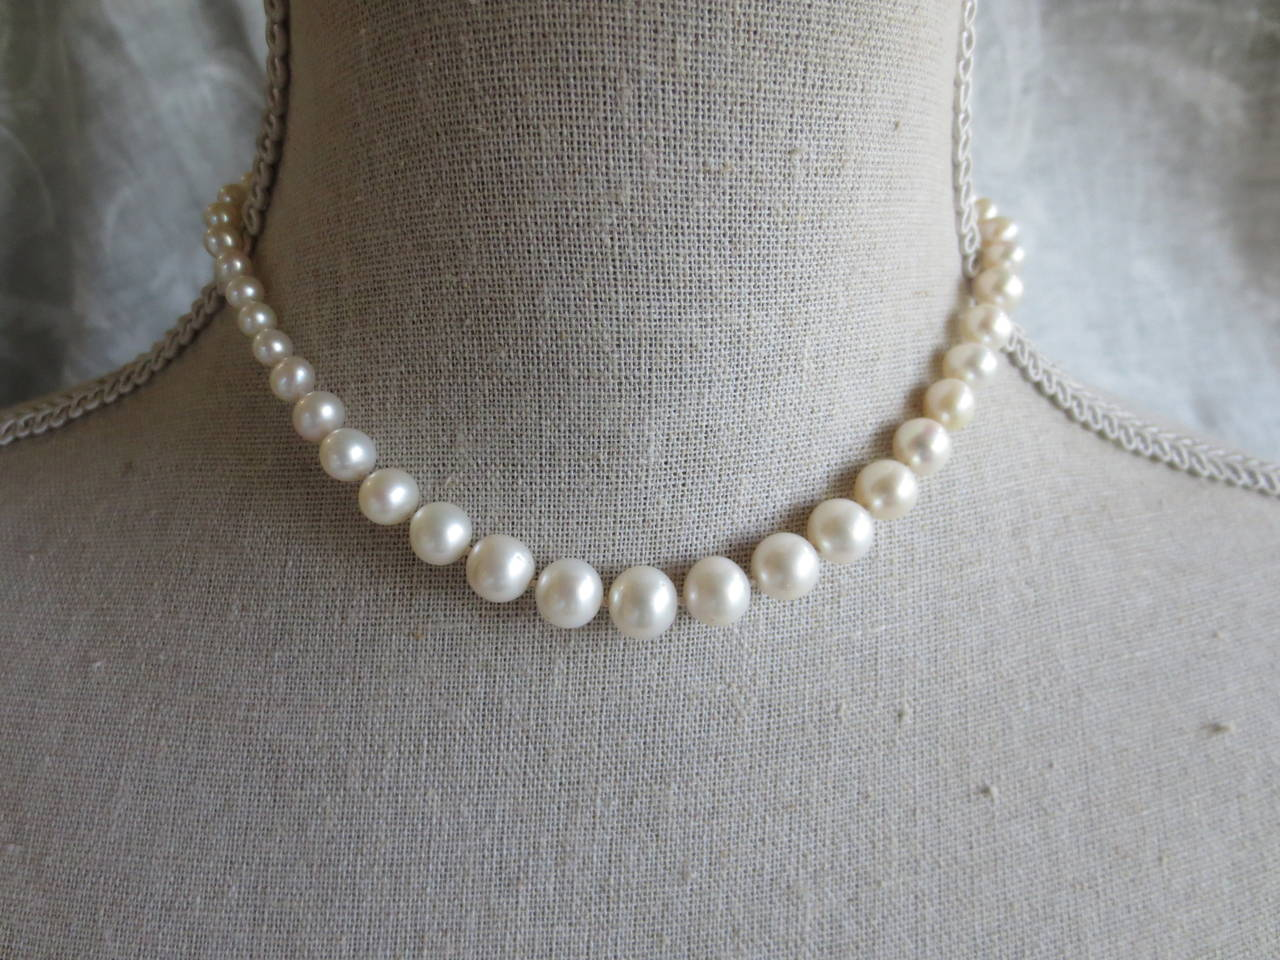 "A classic necklace made of cultured pearls. Each pearl is hand selected for its size to create an absolutely detailed and perfectly graduated necklace. Beads measure from 6.5 to 2.5 mm. This necklace measures 15"" in length, and sits perfectly"